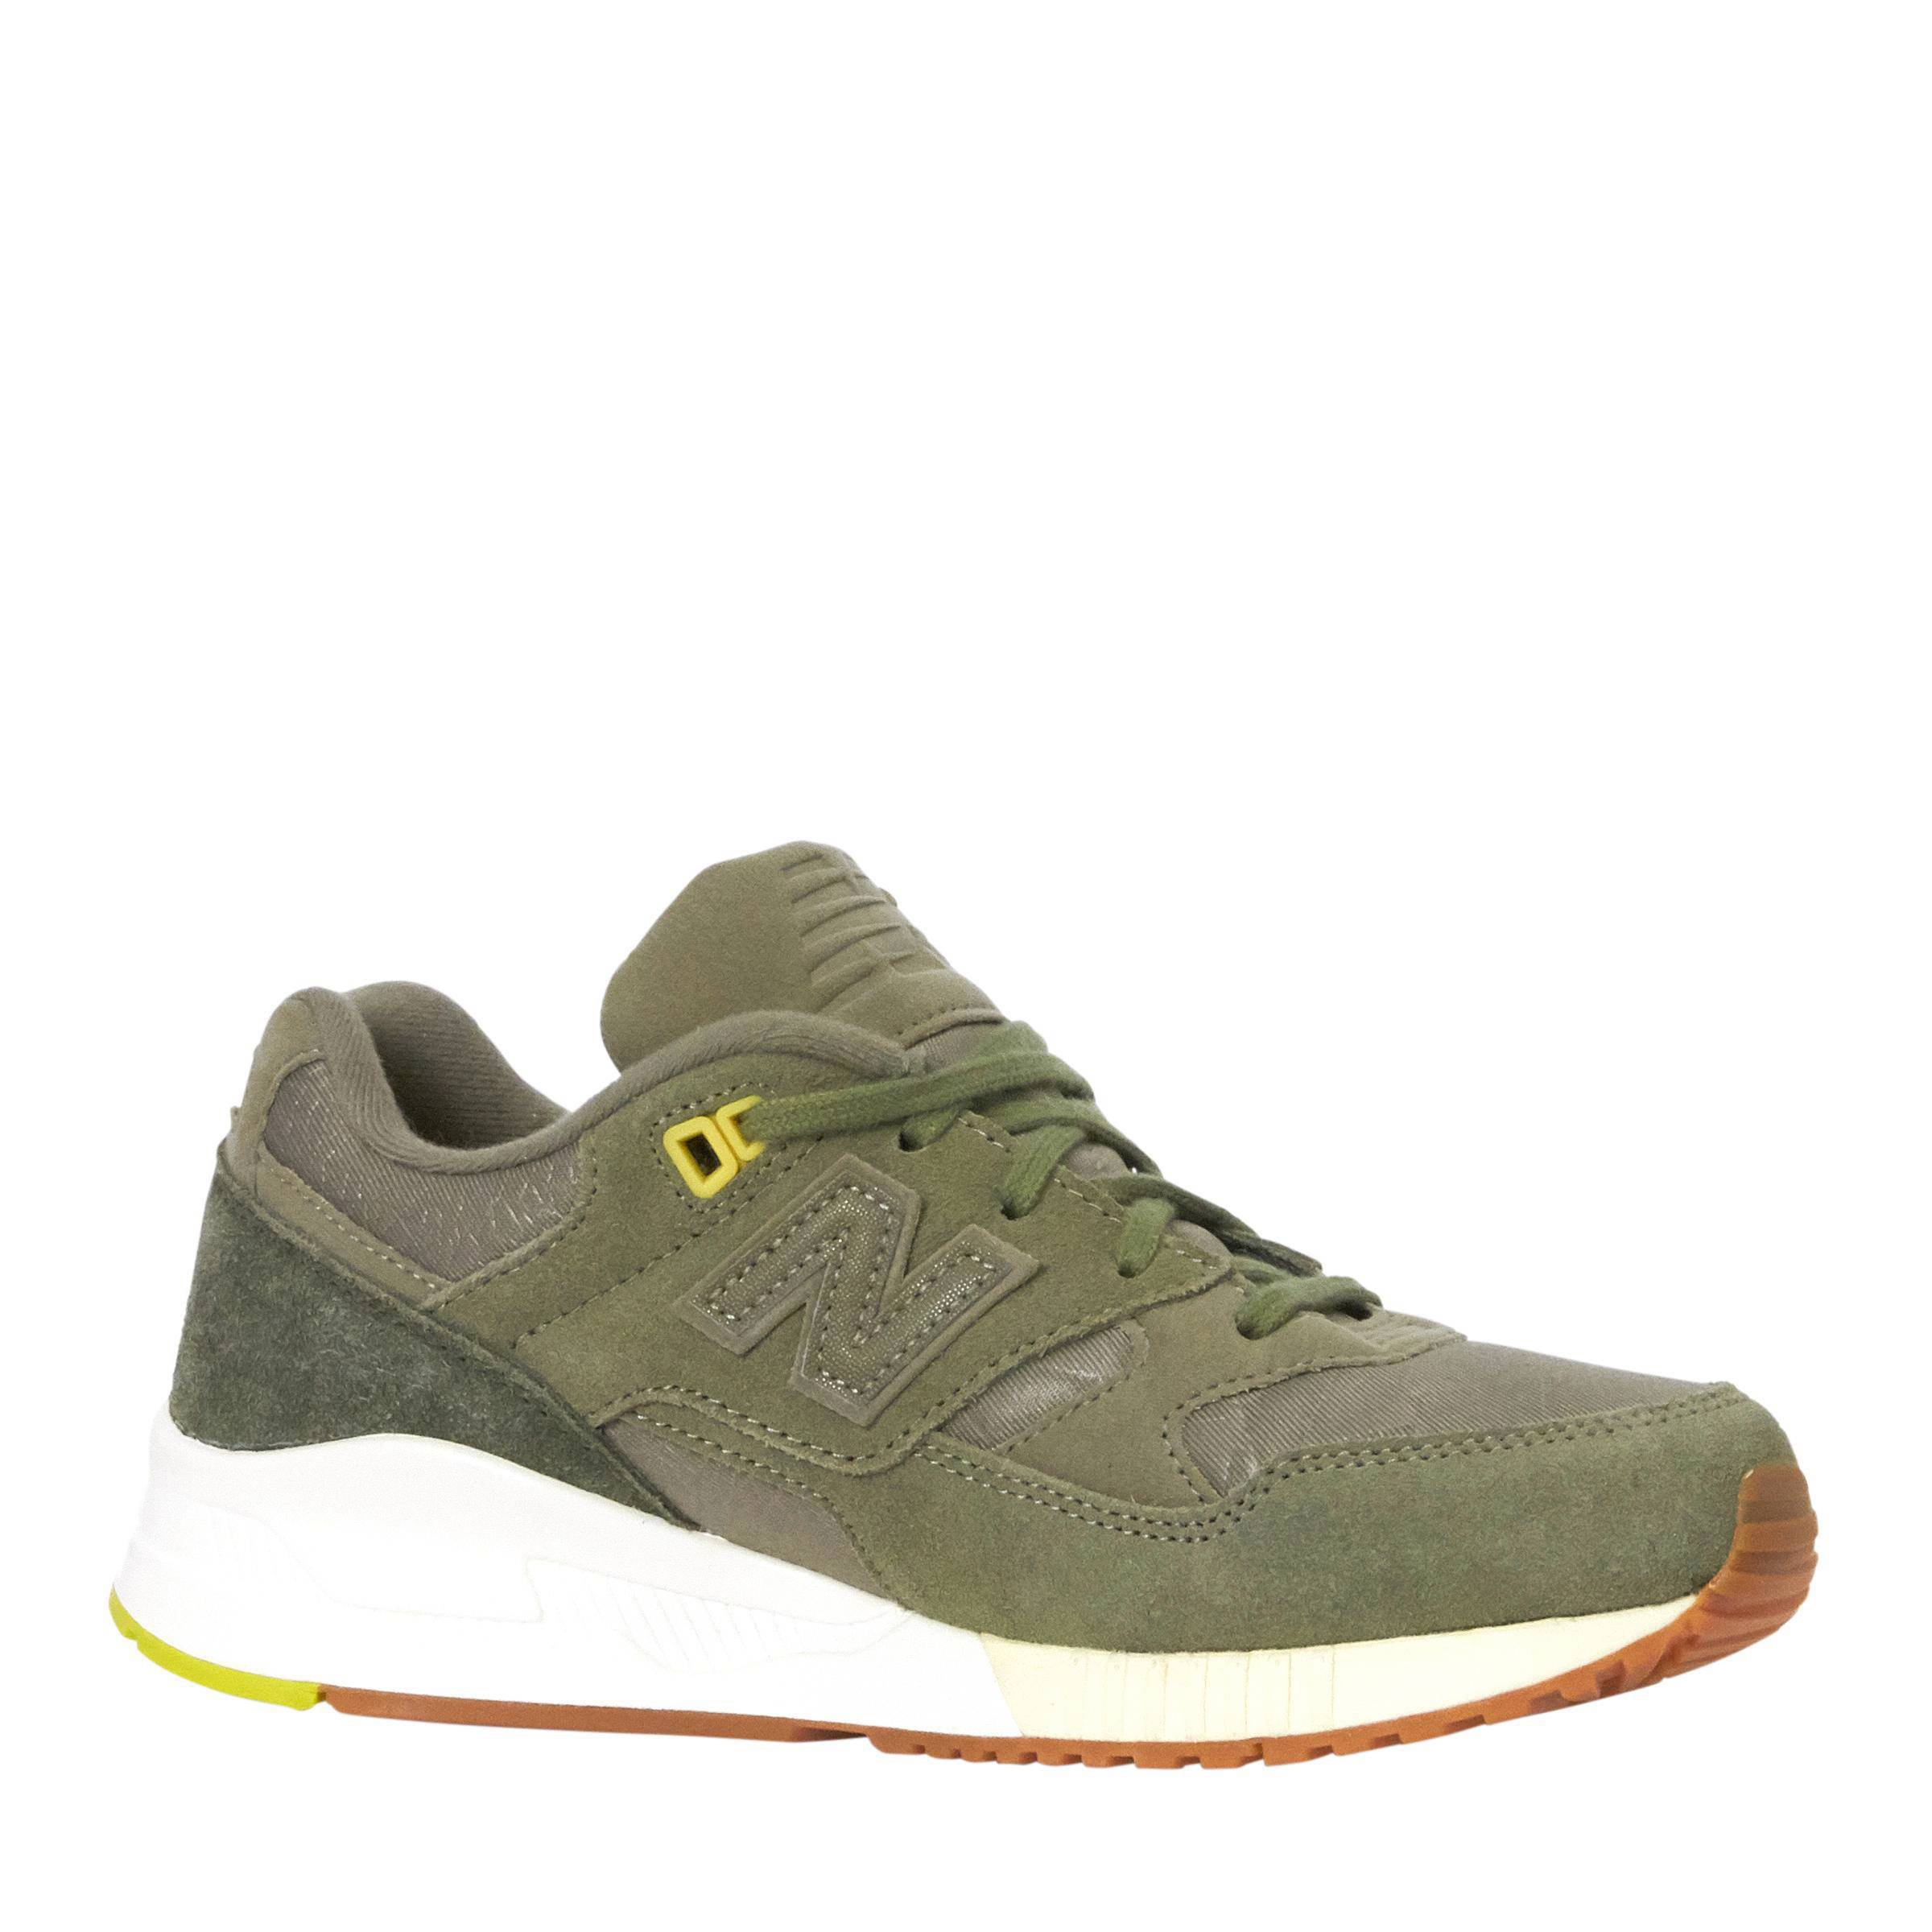 new balance 530 dames groen